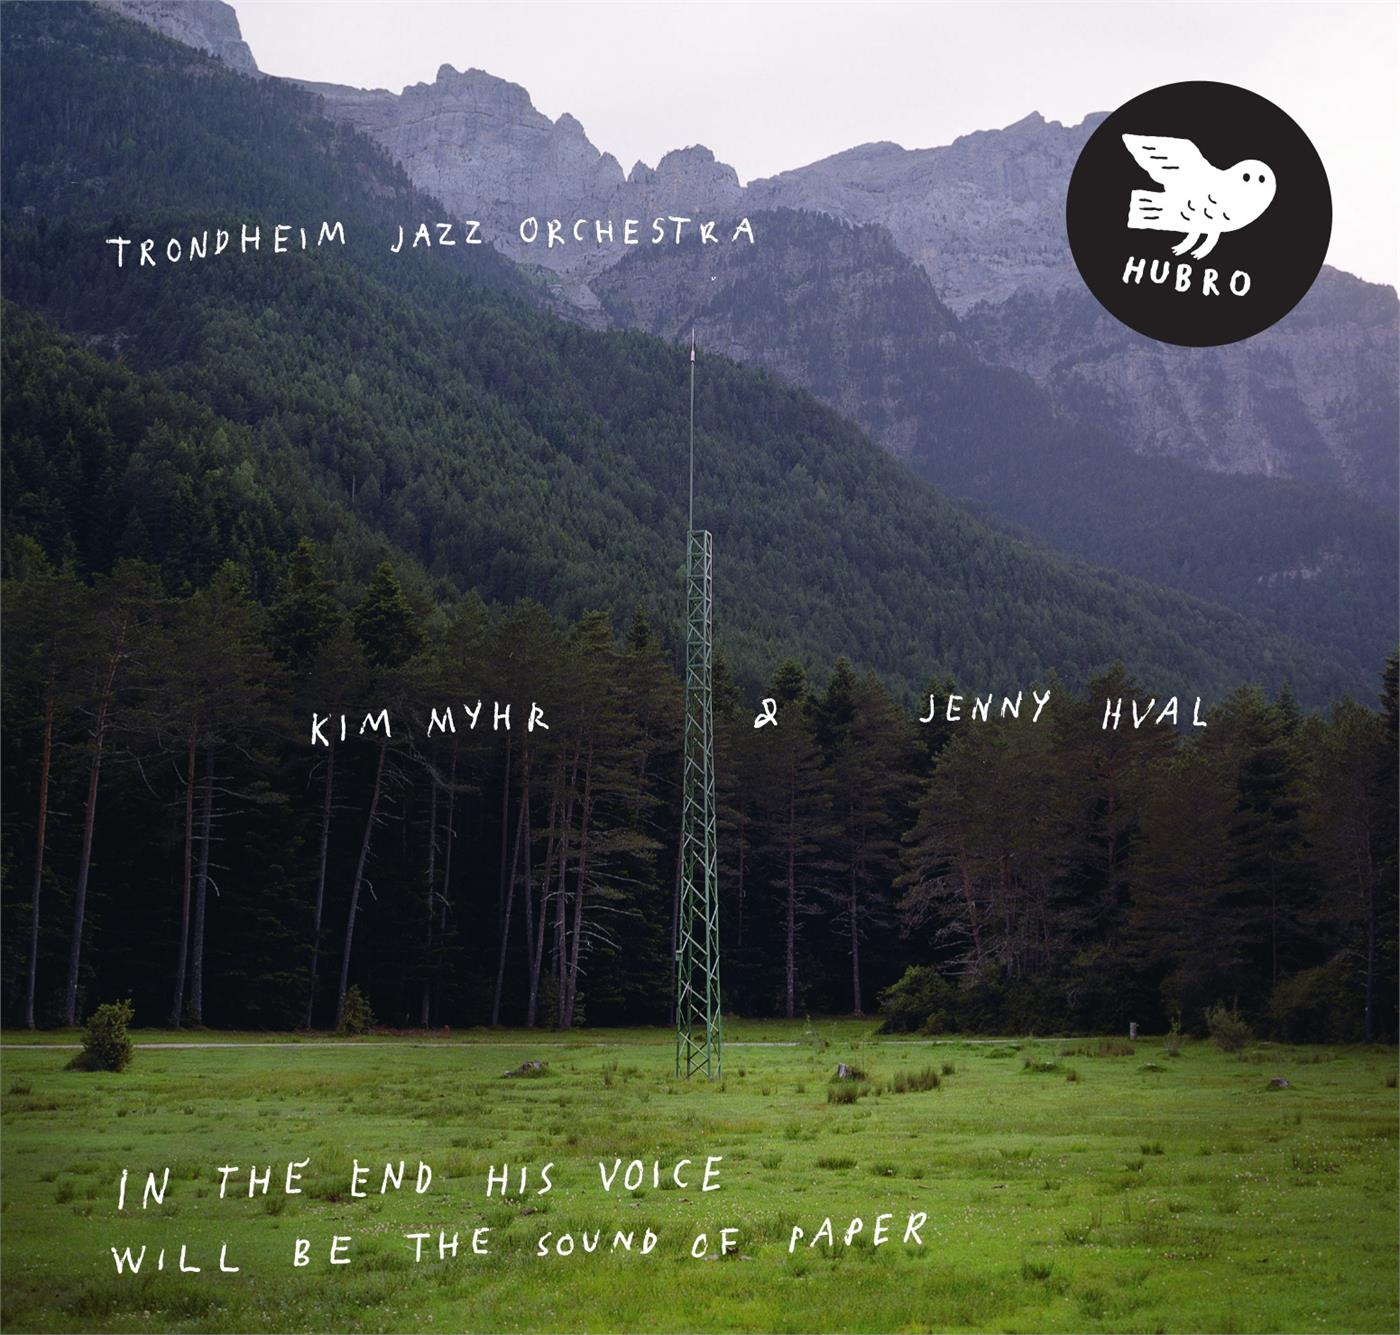 HUBROLP3569 Hubro  Trondheim Jazz Orch, Myhr & Jenny Hval In the End His Voice Will Be (2LP)